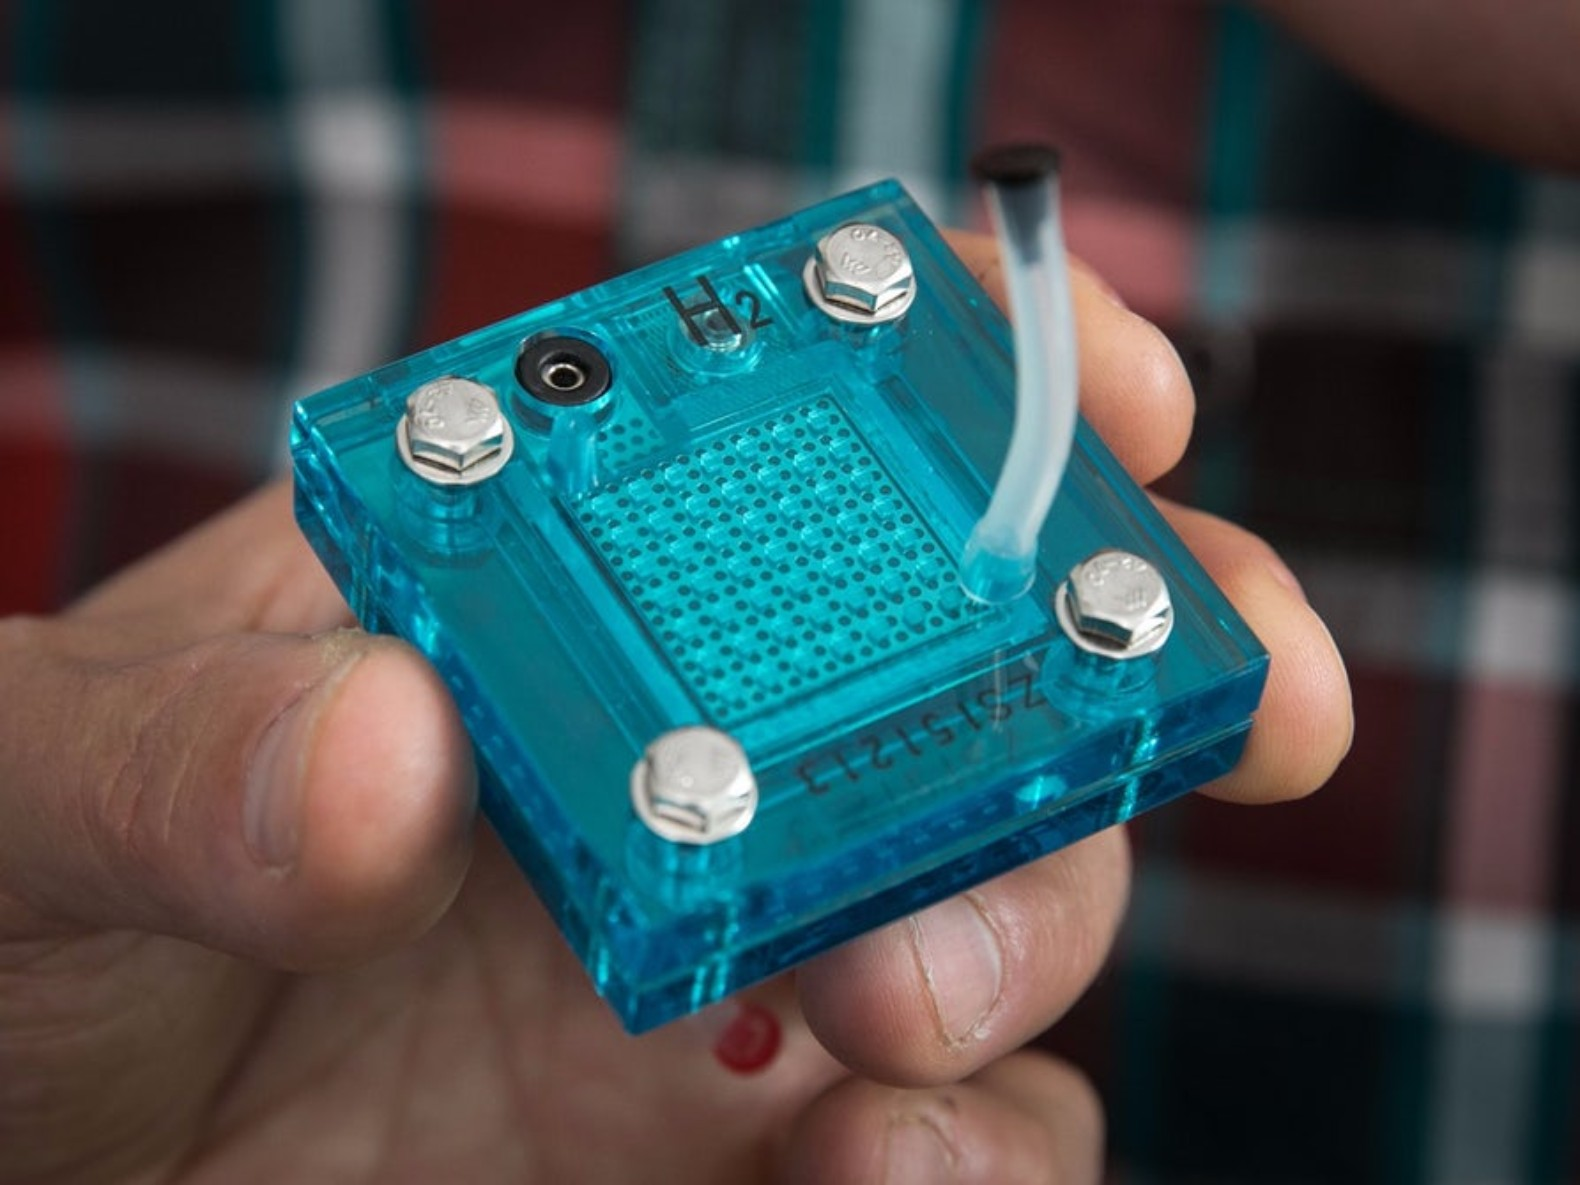 Affordable new device uses solar energy to produce hydrogen and electricity